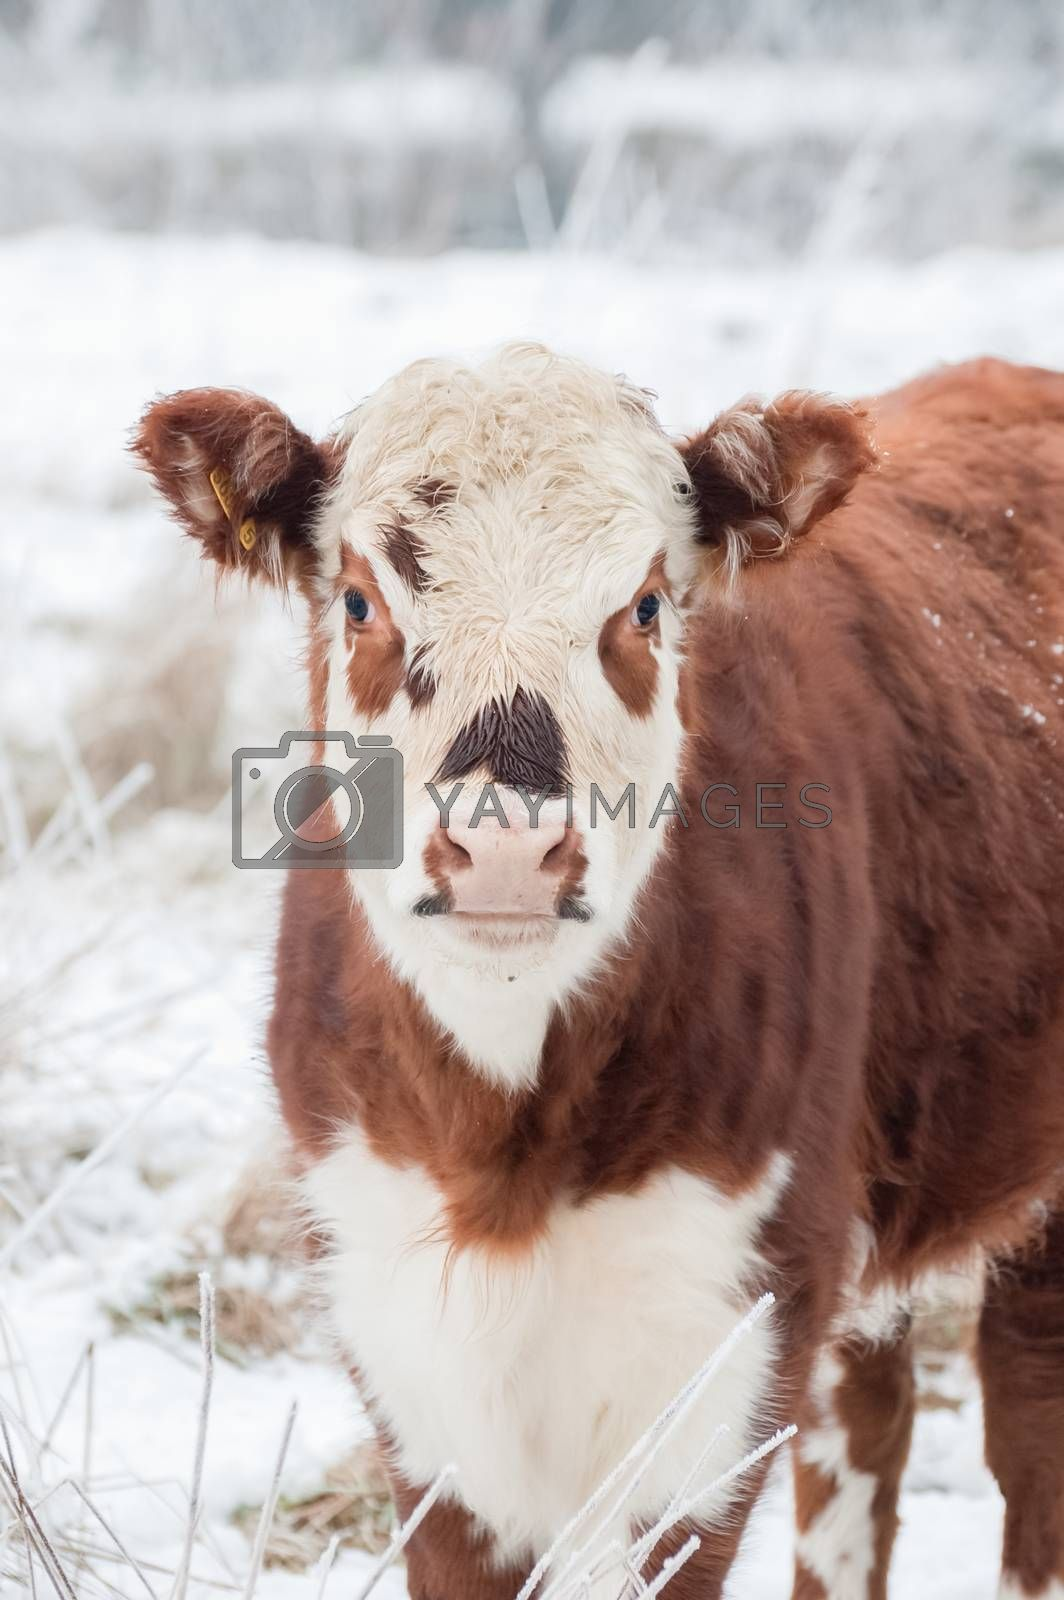 Royalty free image of cow in winter by nelsonart